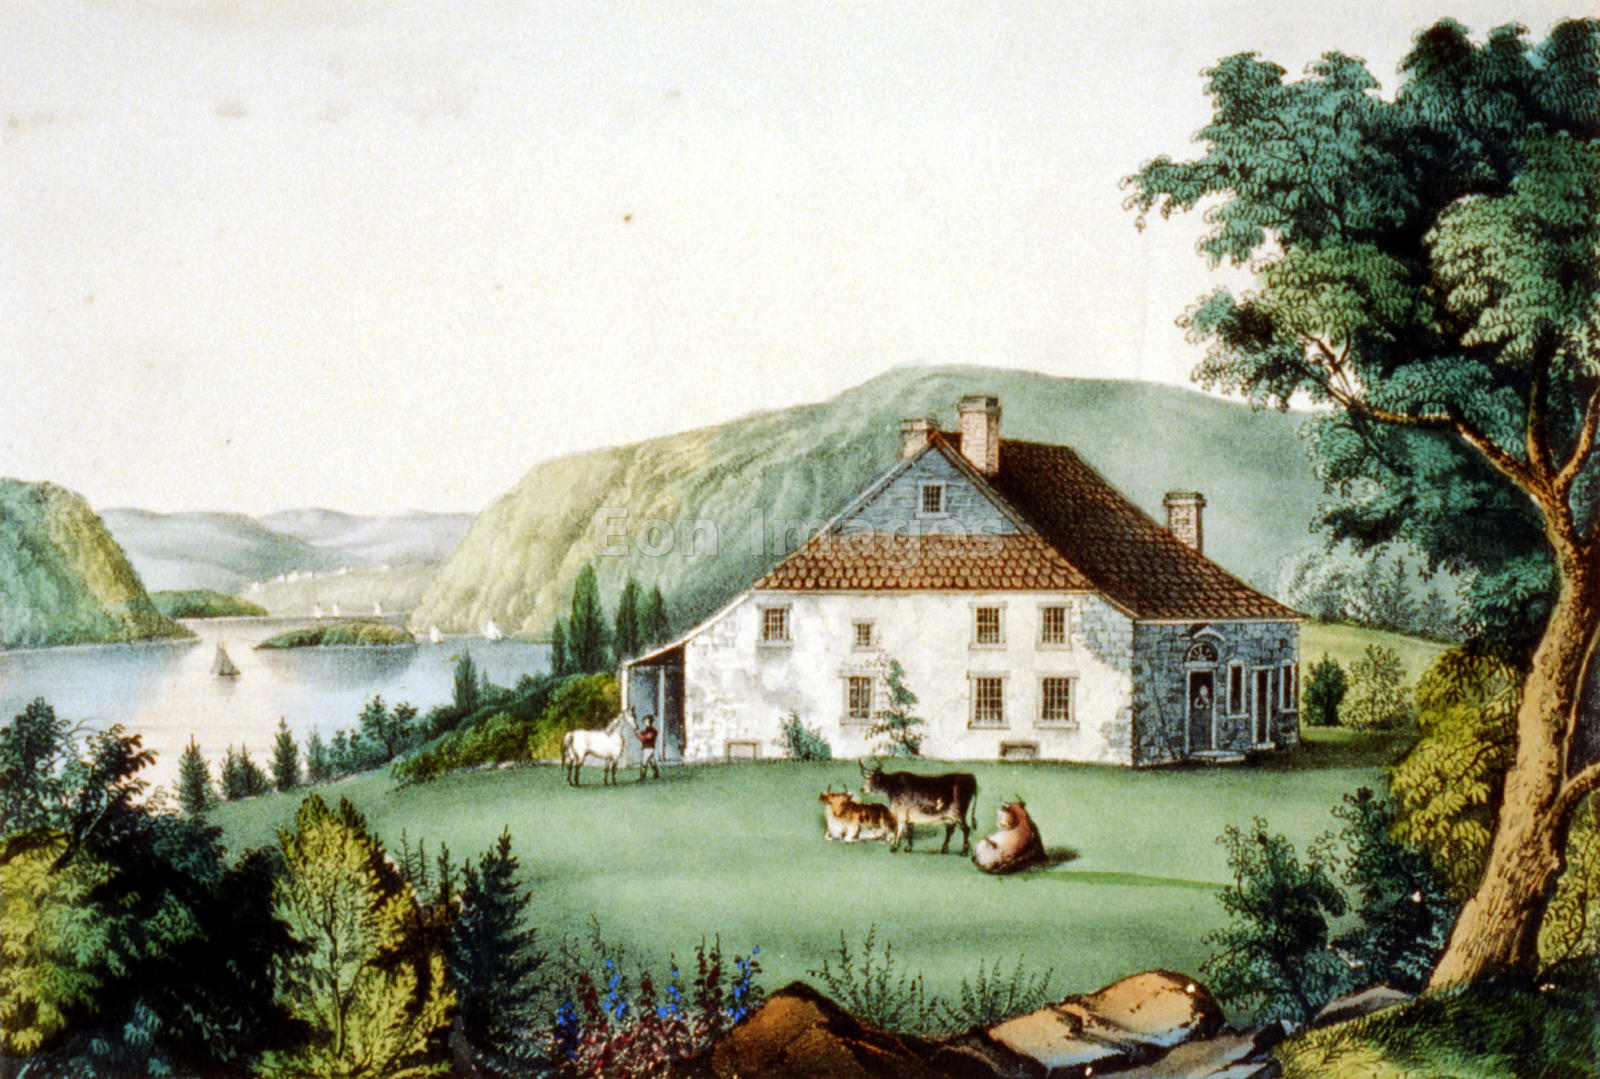 Washington's headquarters at Newburgh during American Revolution